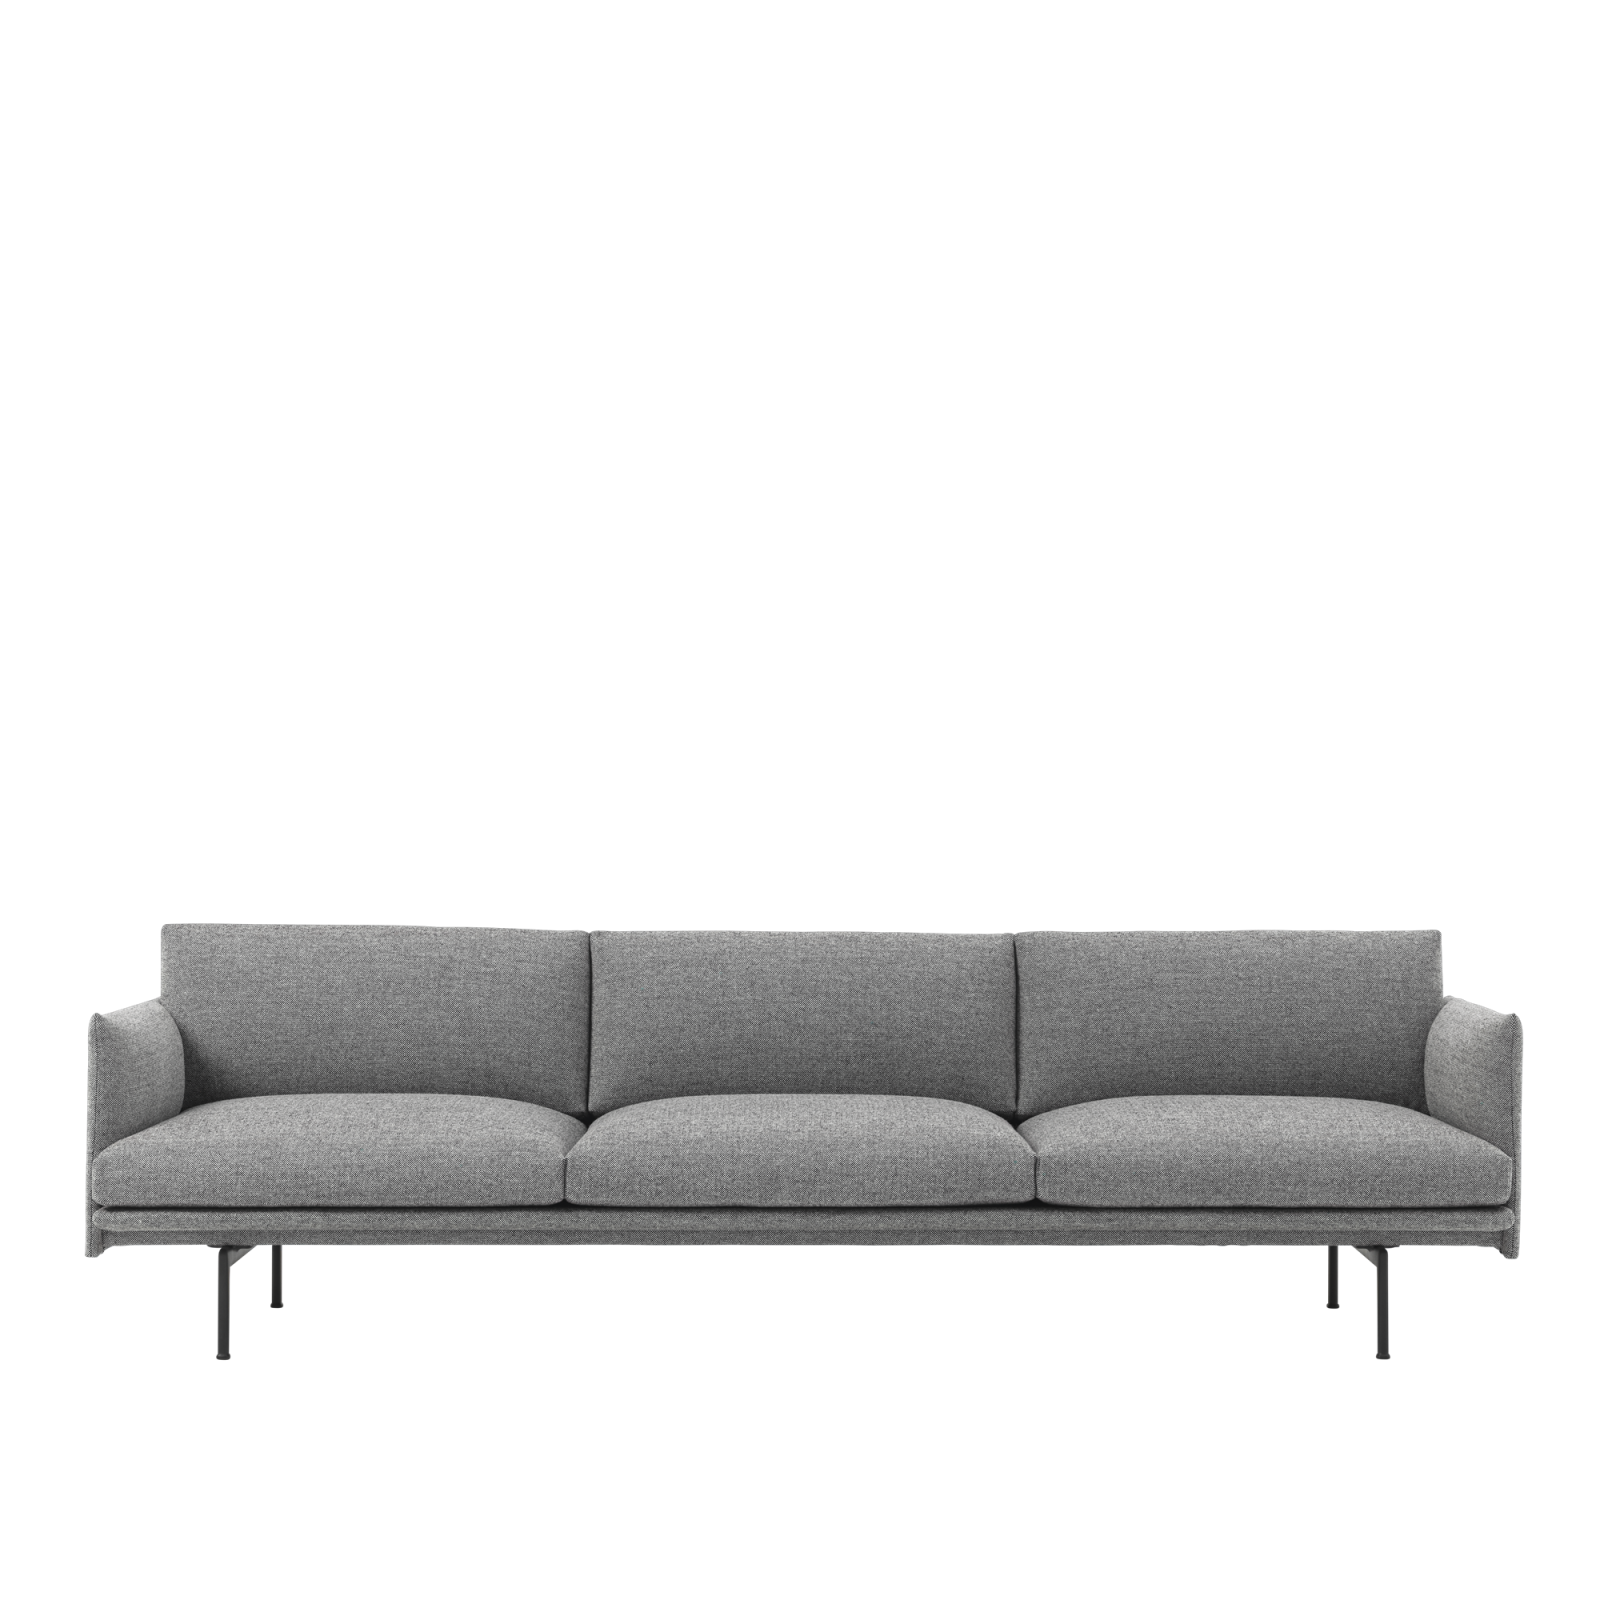 Outline 3 1/2-seater Sofa Remix 2 113 thumbnail